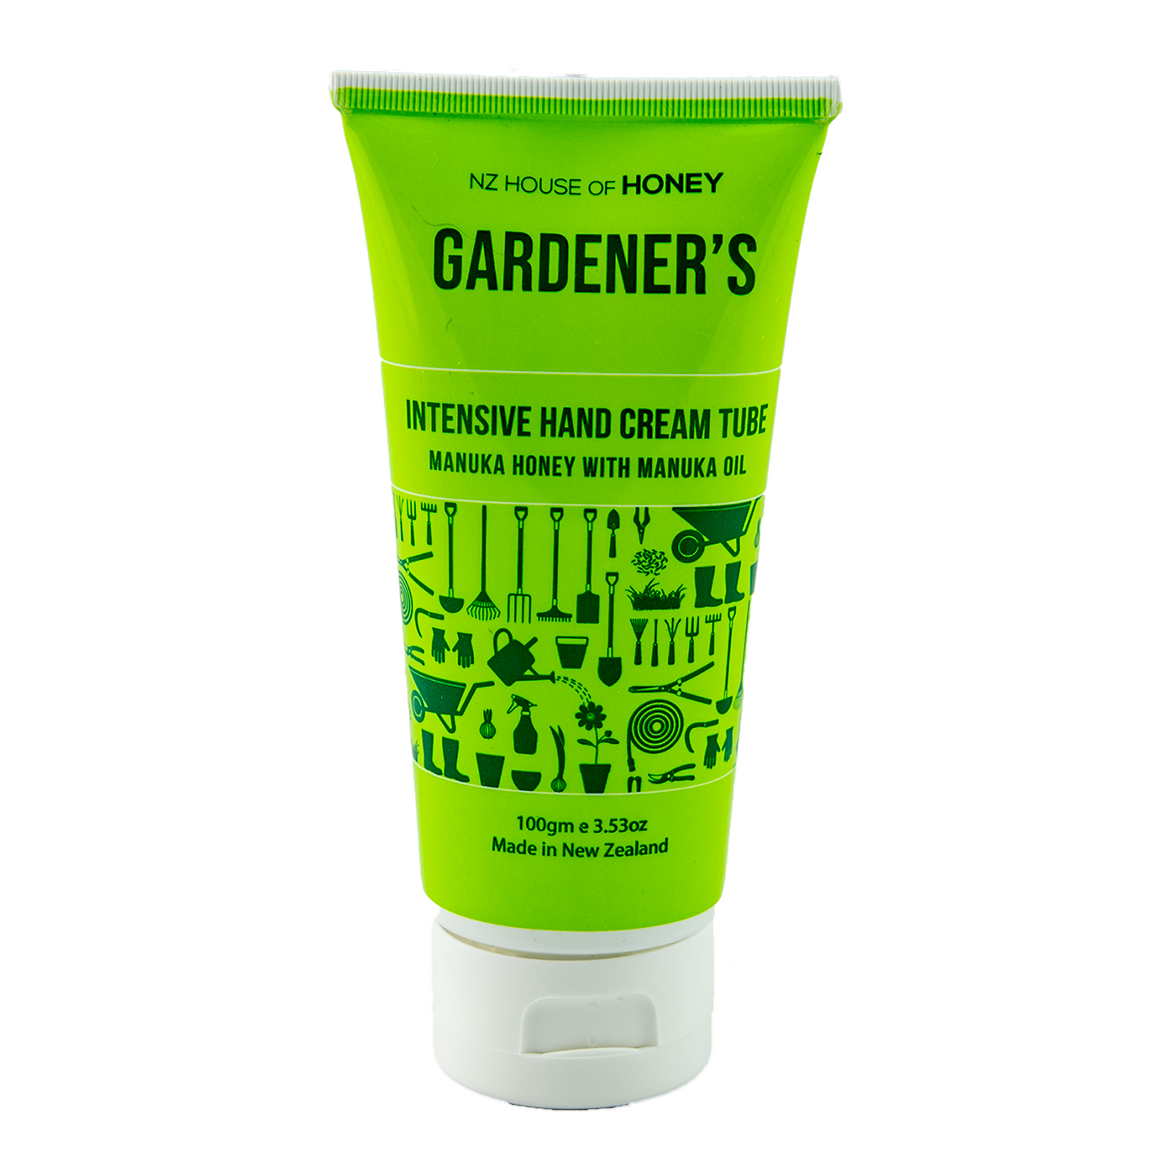 Gardeners Intensive Hand Cream - Face & Body | NZ House of Honey